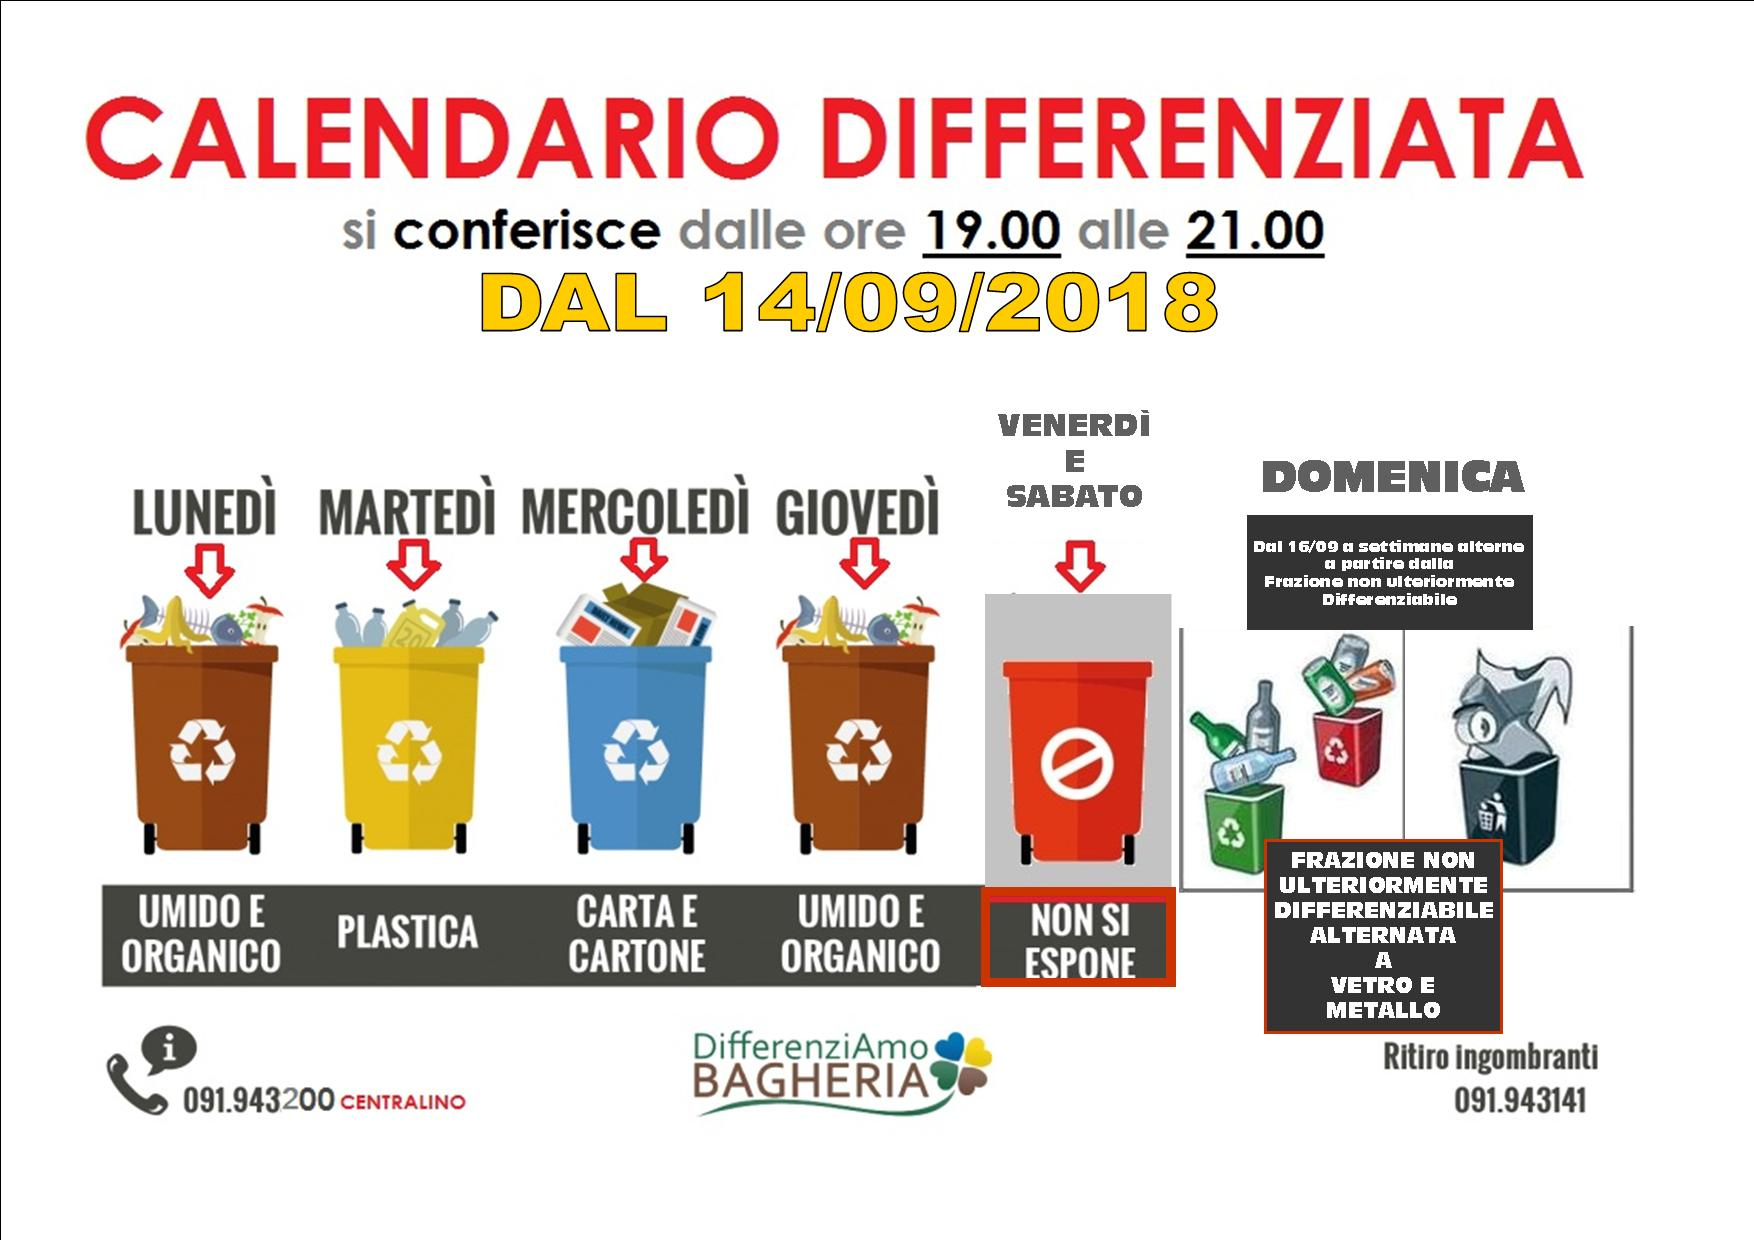 Calendario Differenziata.Raccolta Differenziata Cambia Il Calendario L